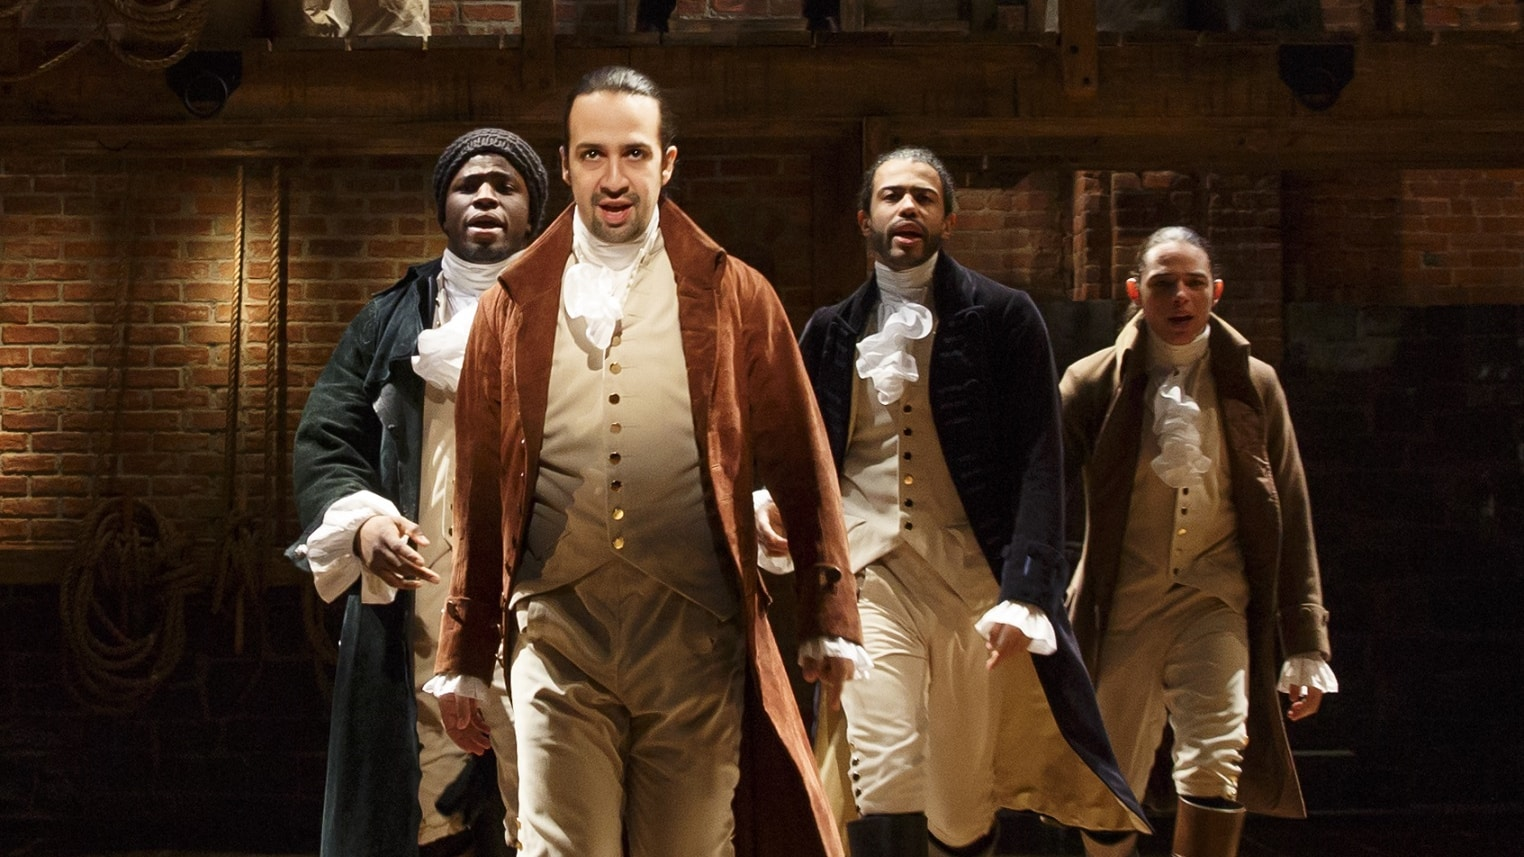 Hamilton movie Disney+ Lin-Manuel Miranda brings theater experience home